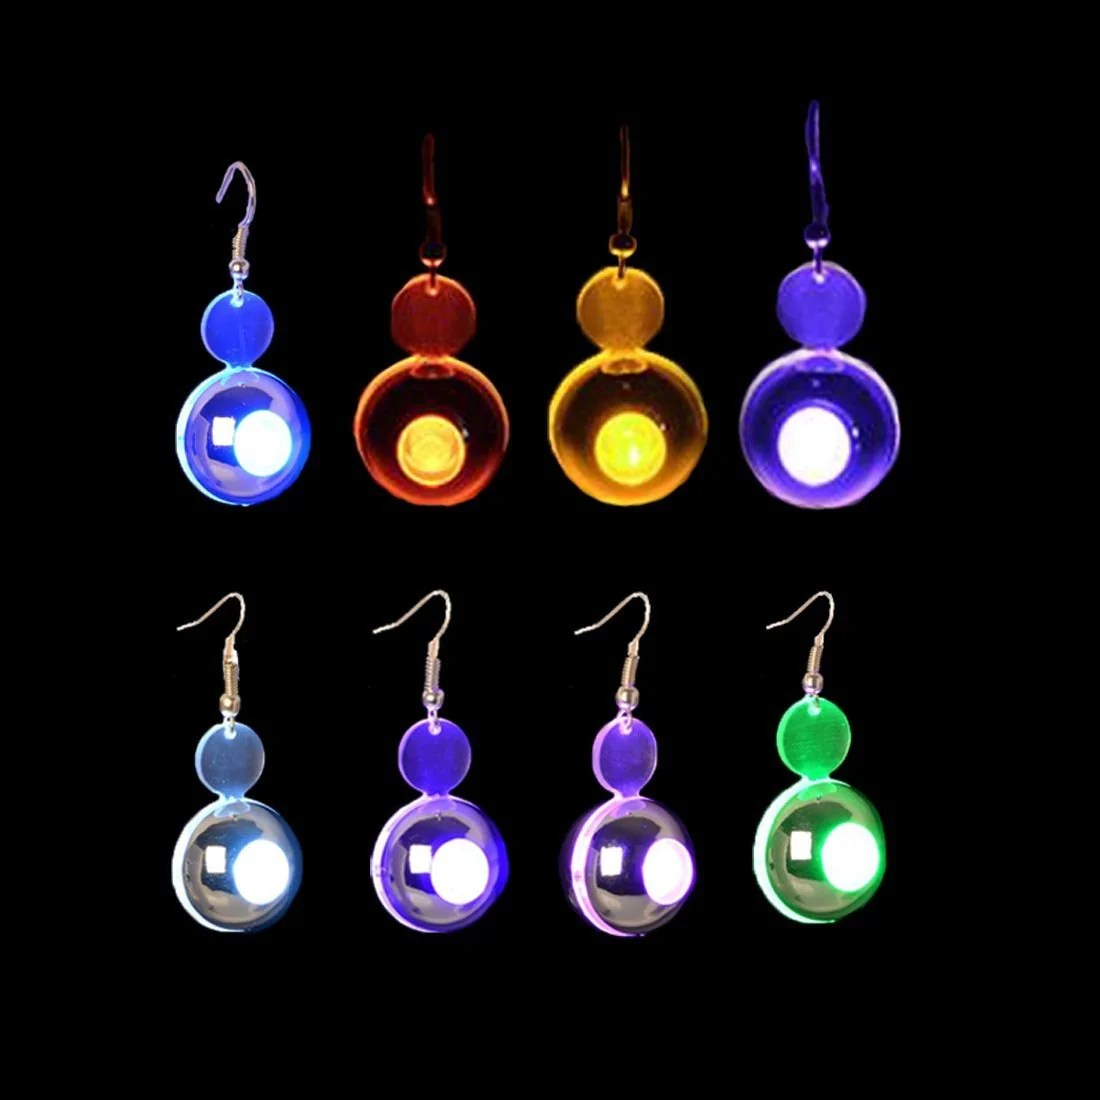 Led Earrings Dazzling Toys New Glowing Big Round Shaped Led Earrings 4 Pairs 4 Colors